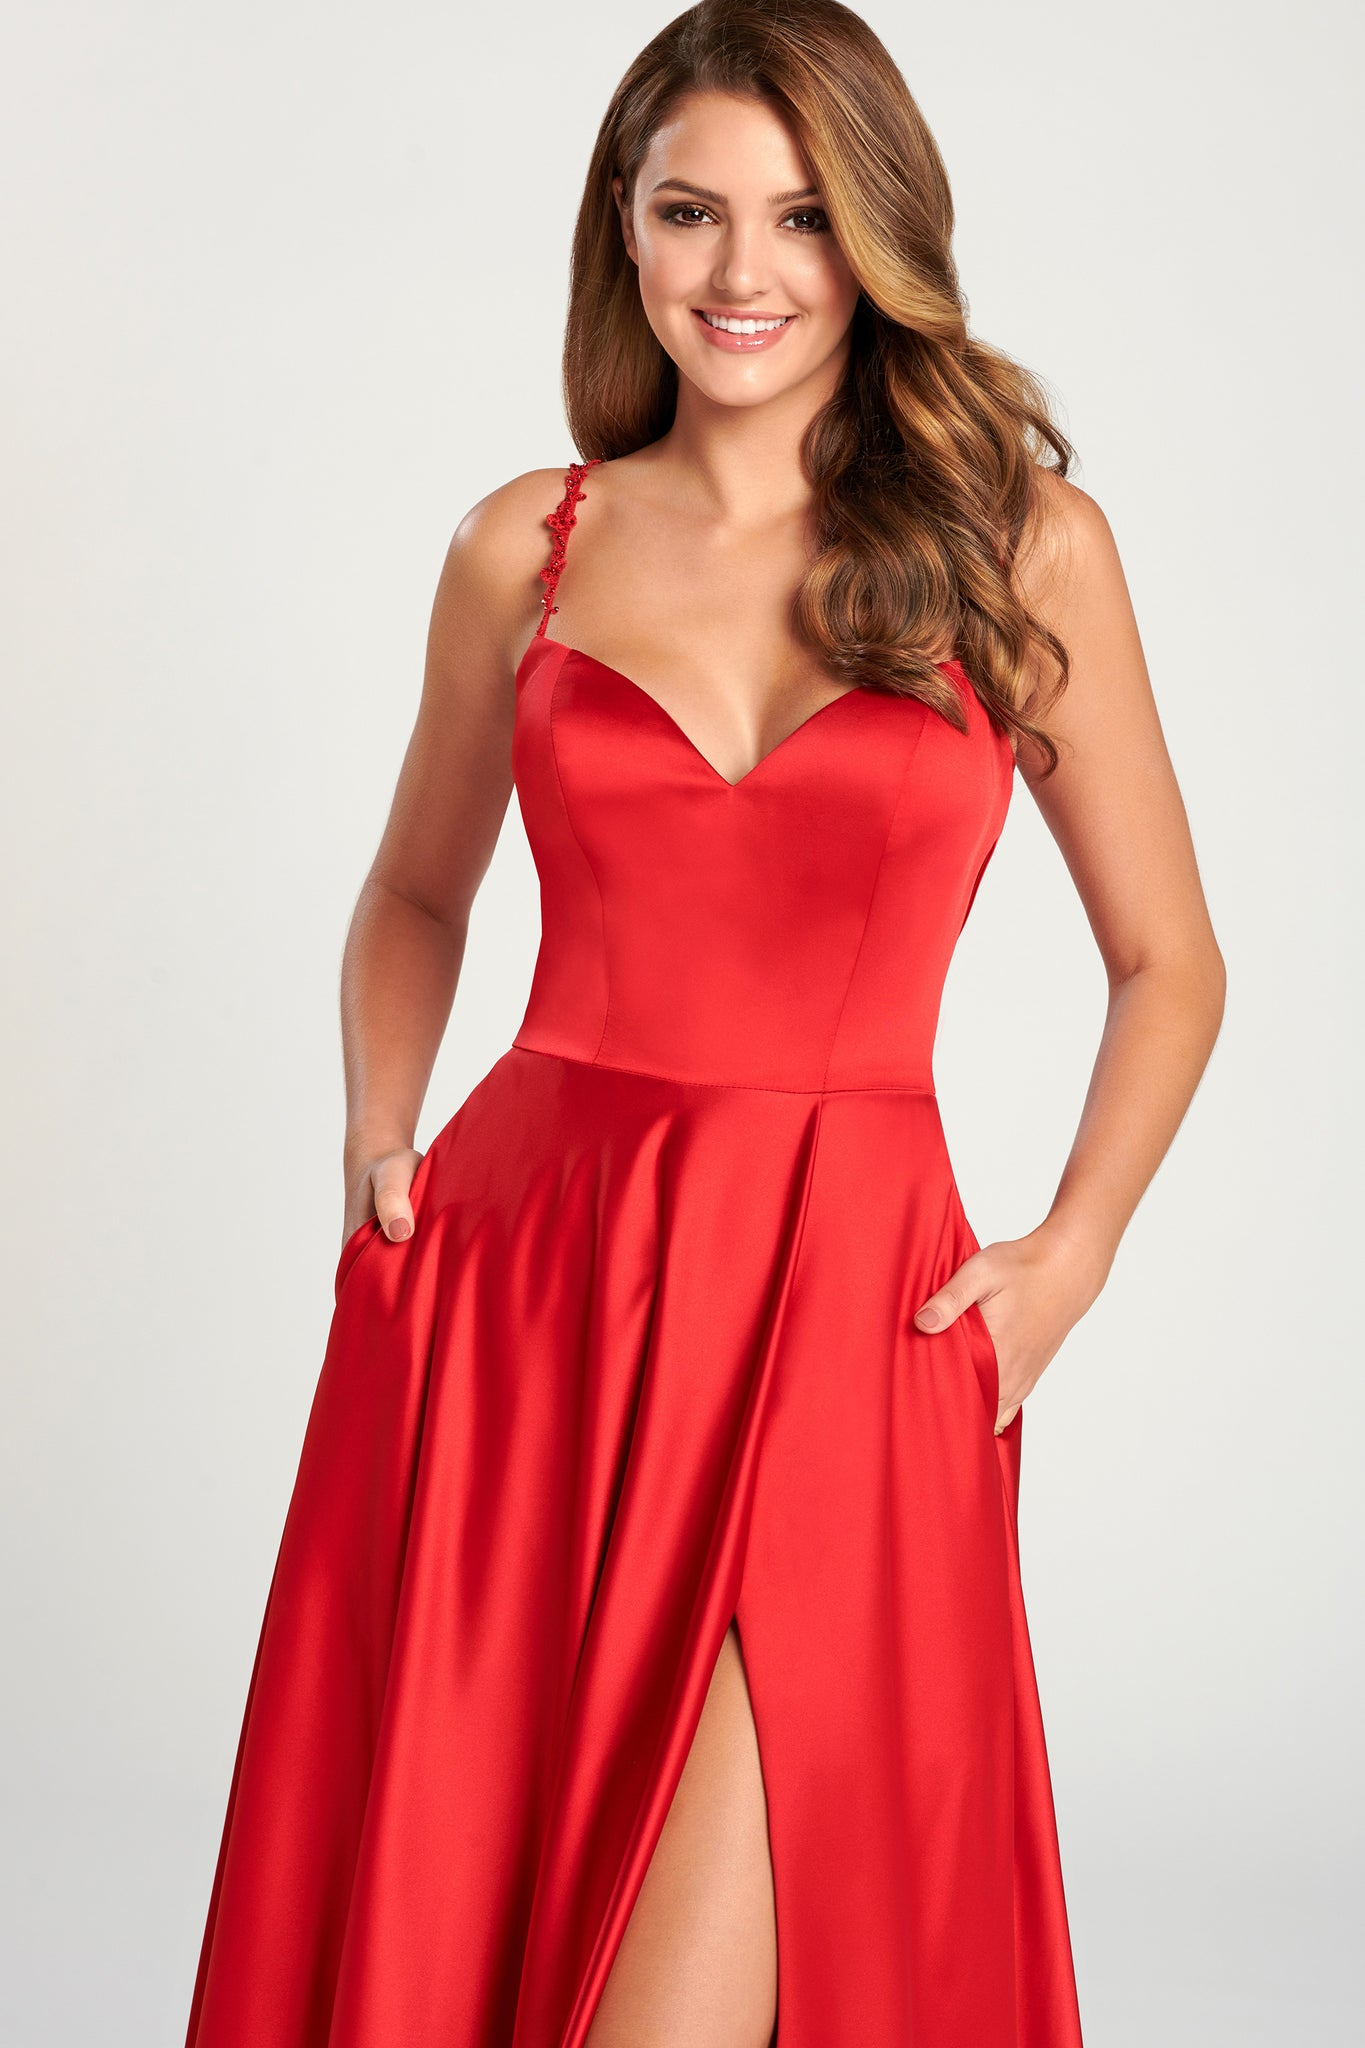 Ellie Wilde Ruby Red Satin Evening Gown - Gissings Boutique